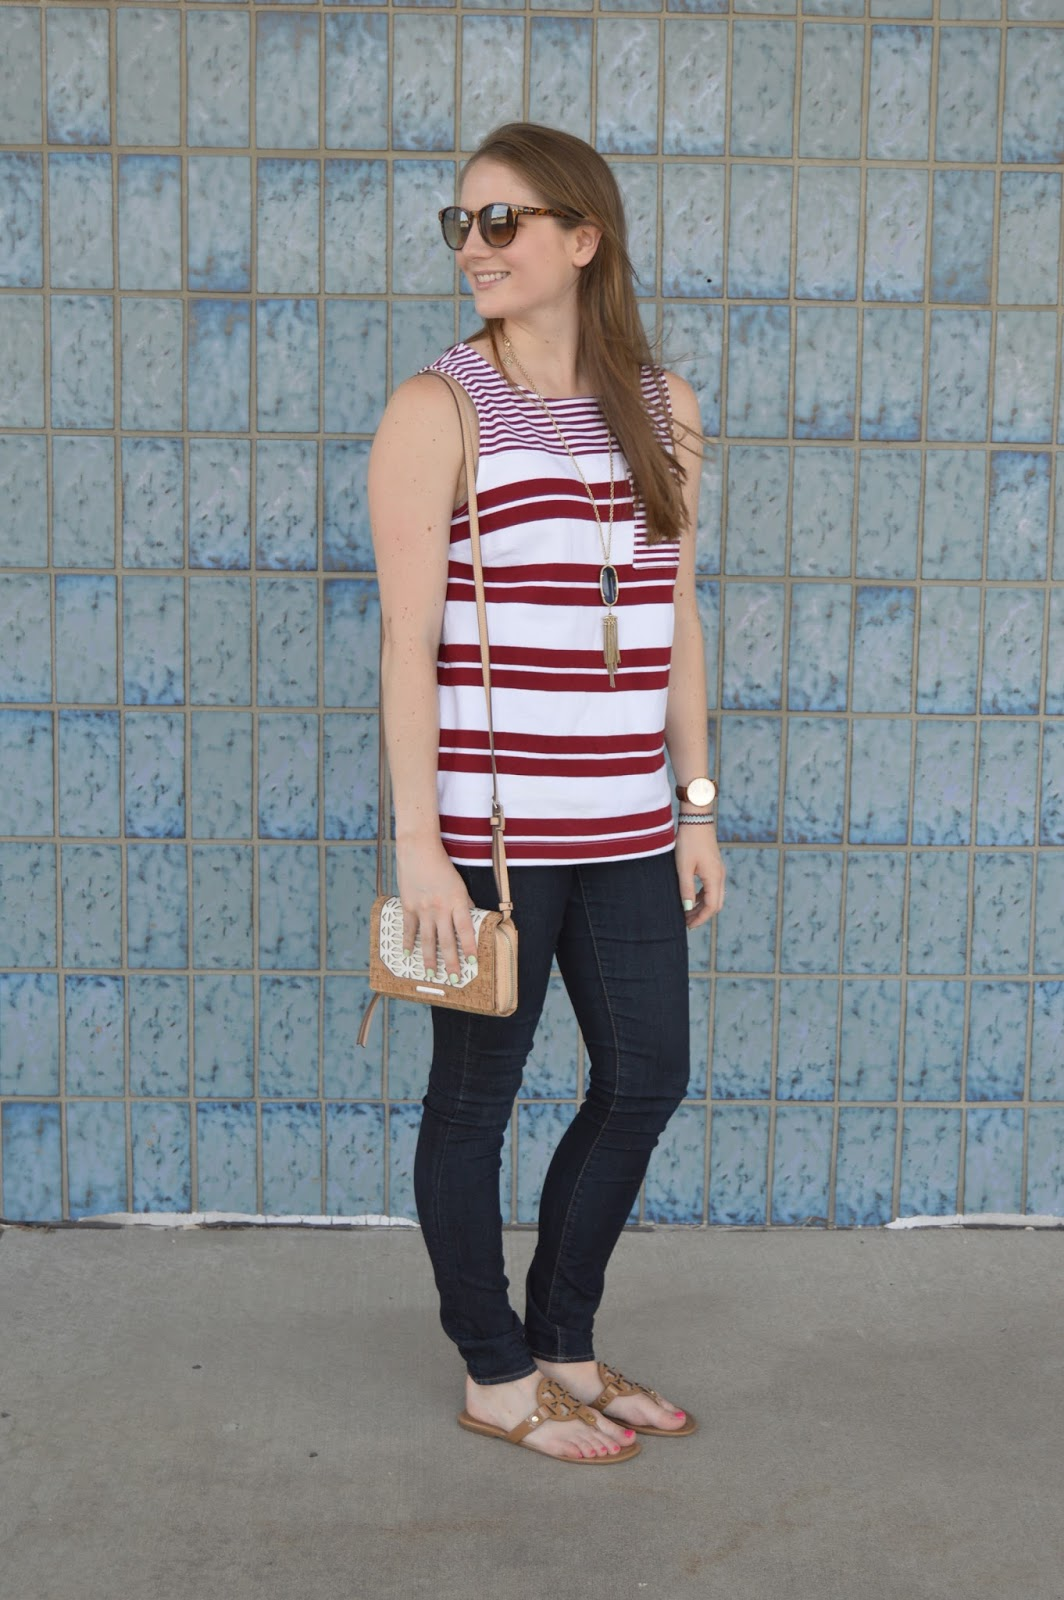 what to wear for fourth of july | fourth of july outfit ideas | outfit inspiration for the fouth of july | cute outfit ideas for summer | red and white striped tank | a memory of us |